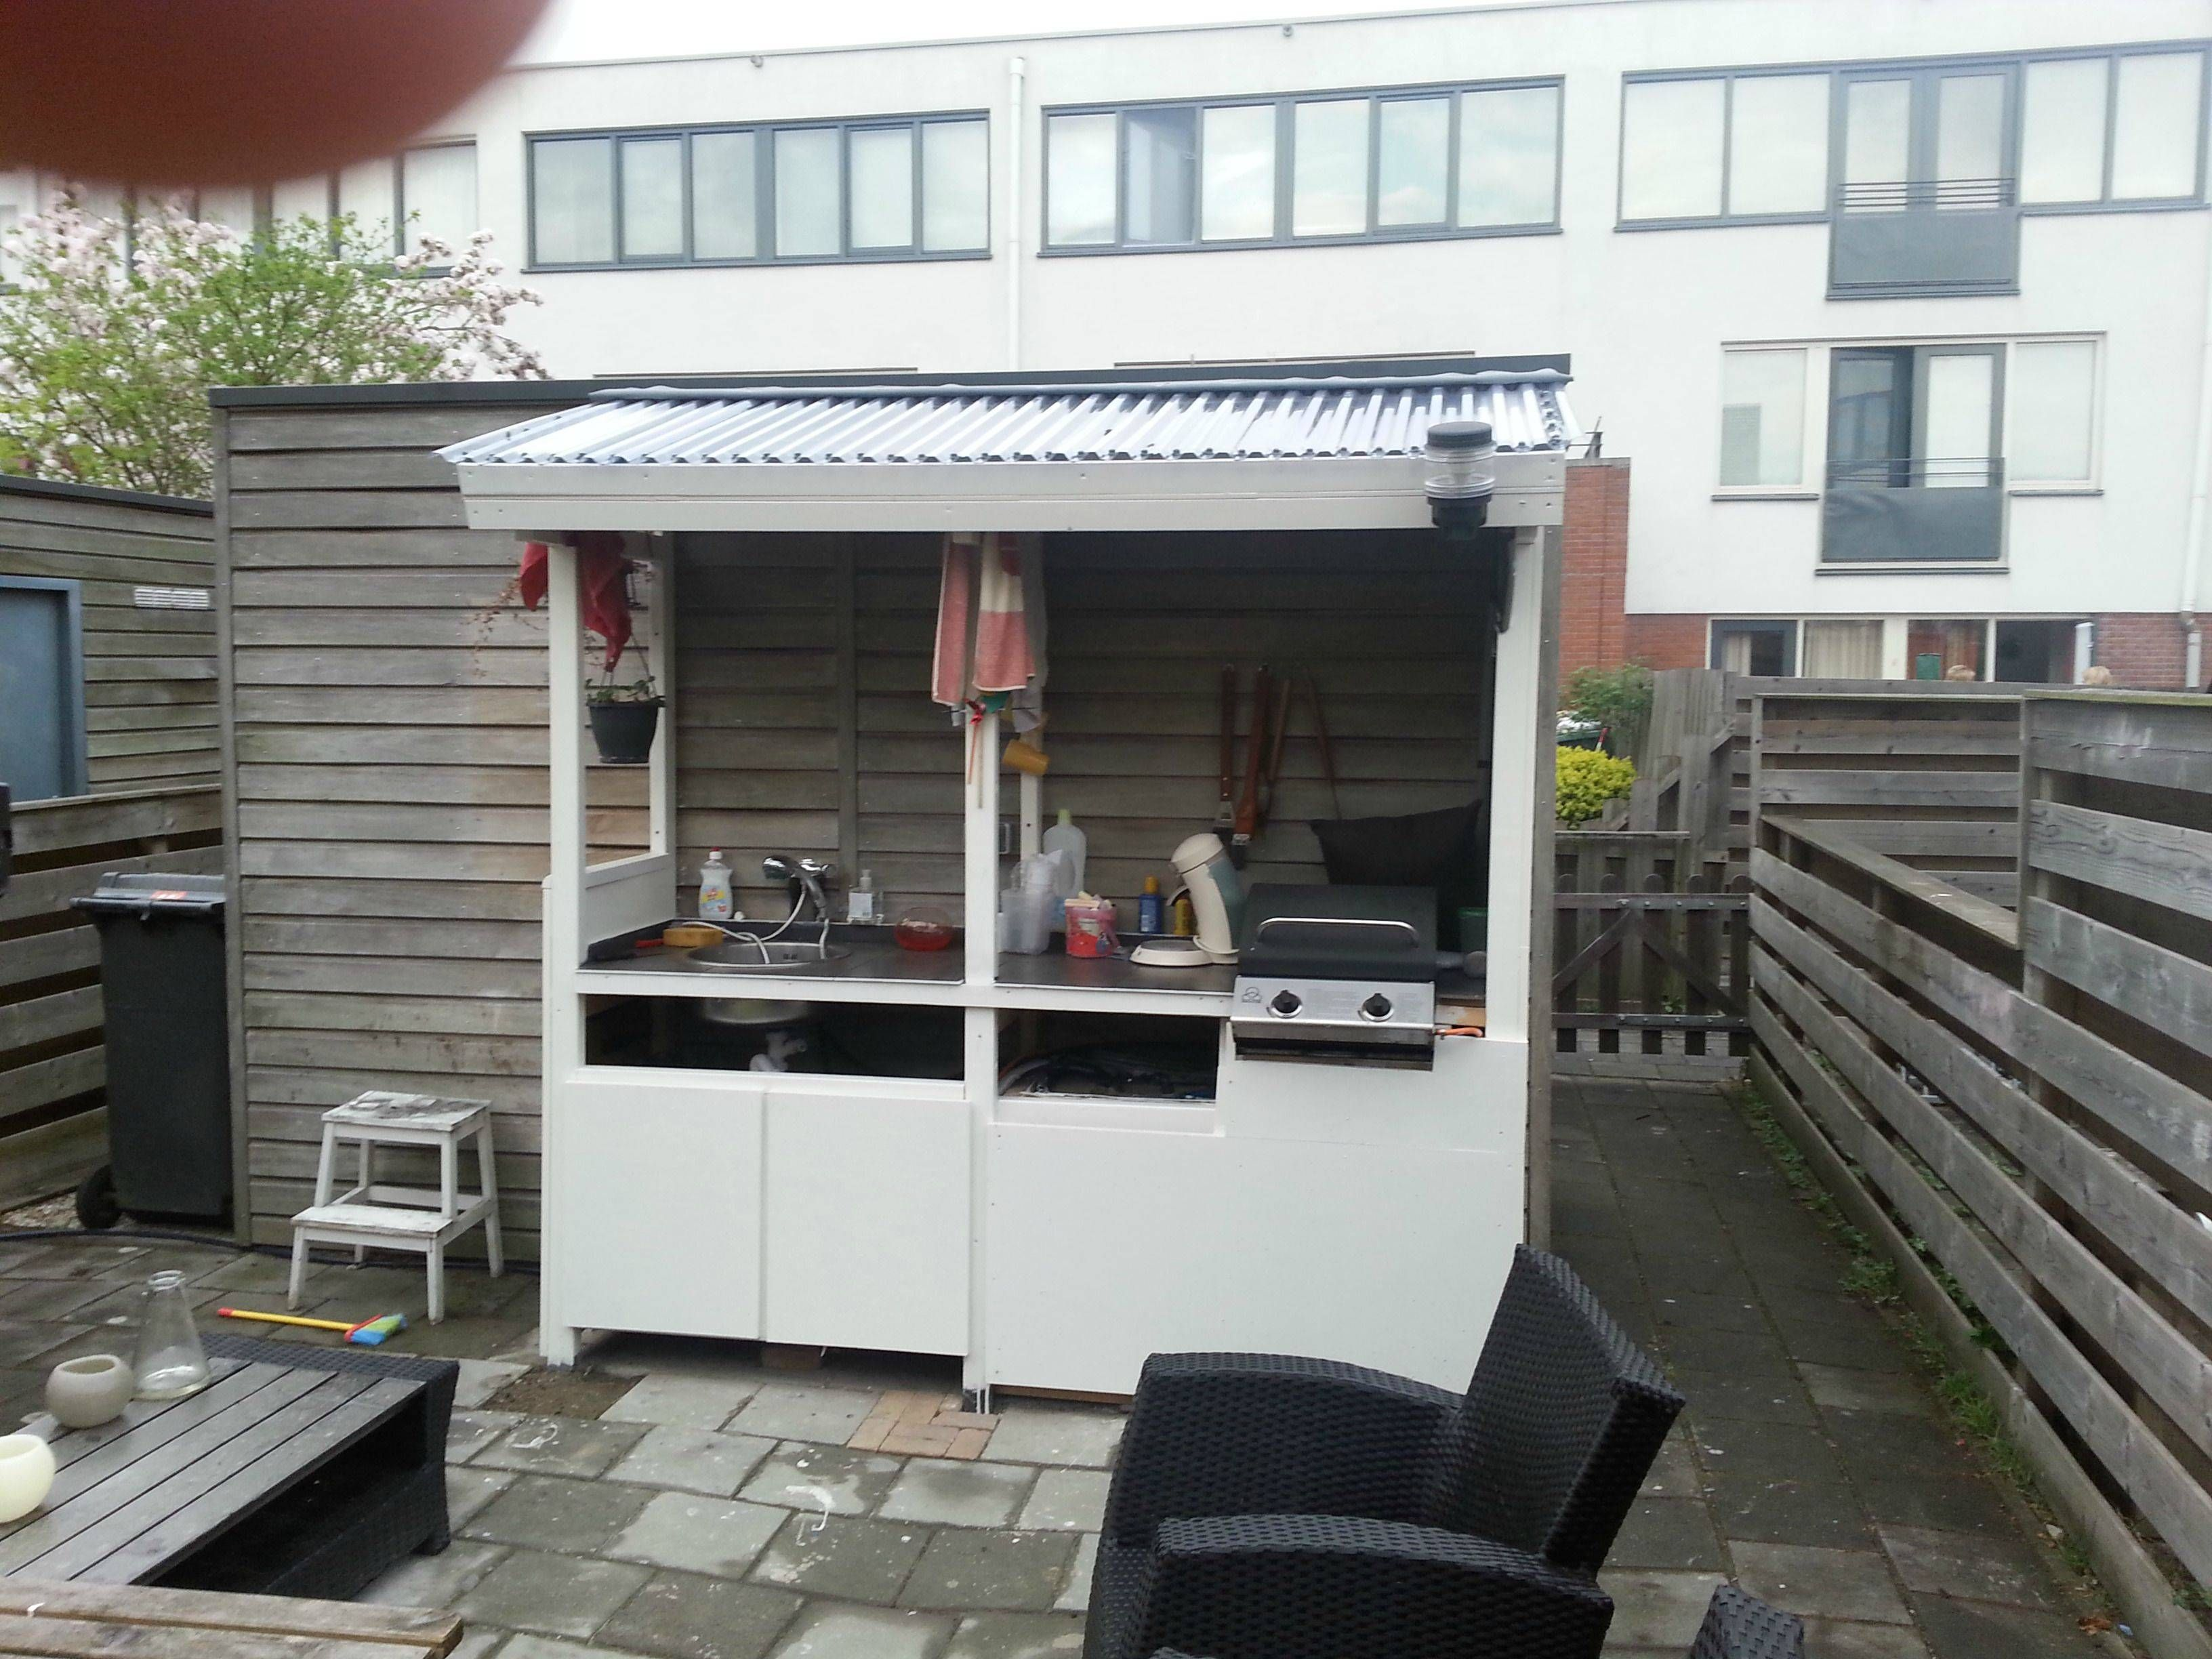 Diy Outdoor Kitchen With Solar Heater For Hot Water Diy Outdoor Kitchen Diy Outdoor Outdoor Kitchen